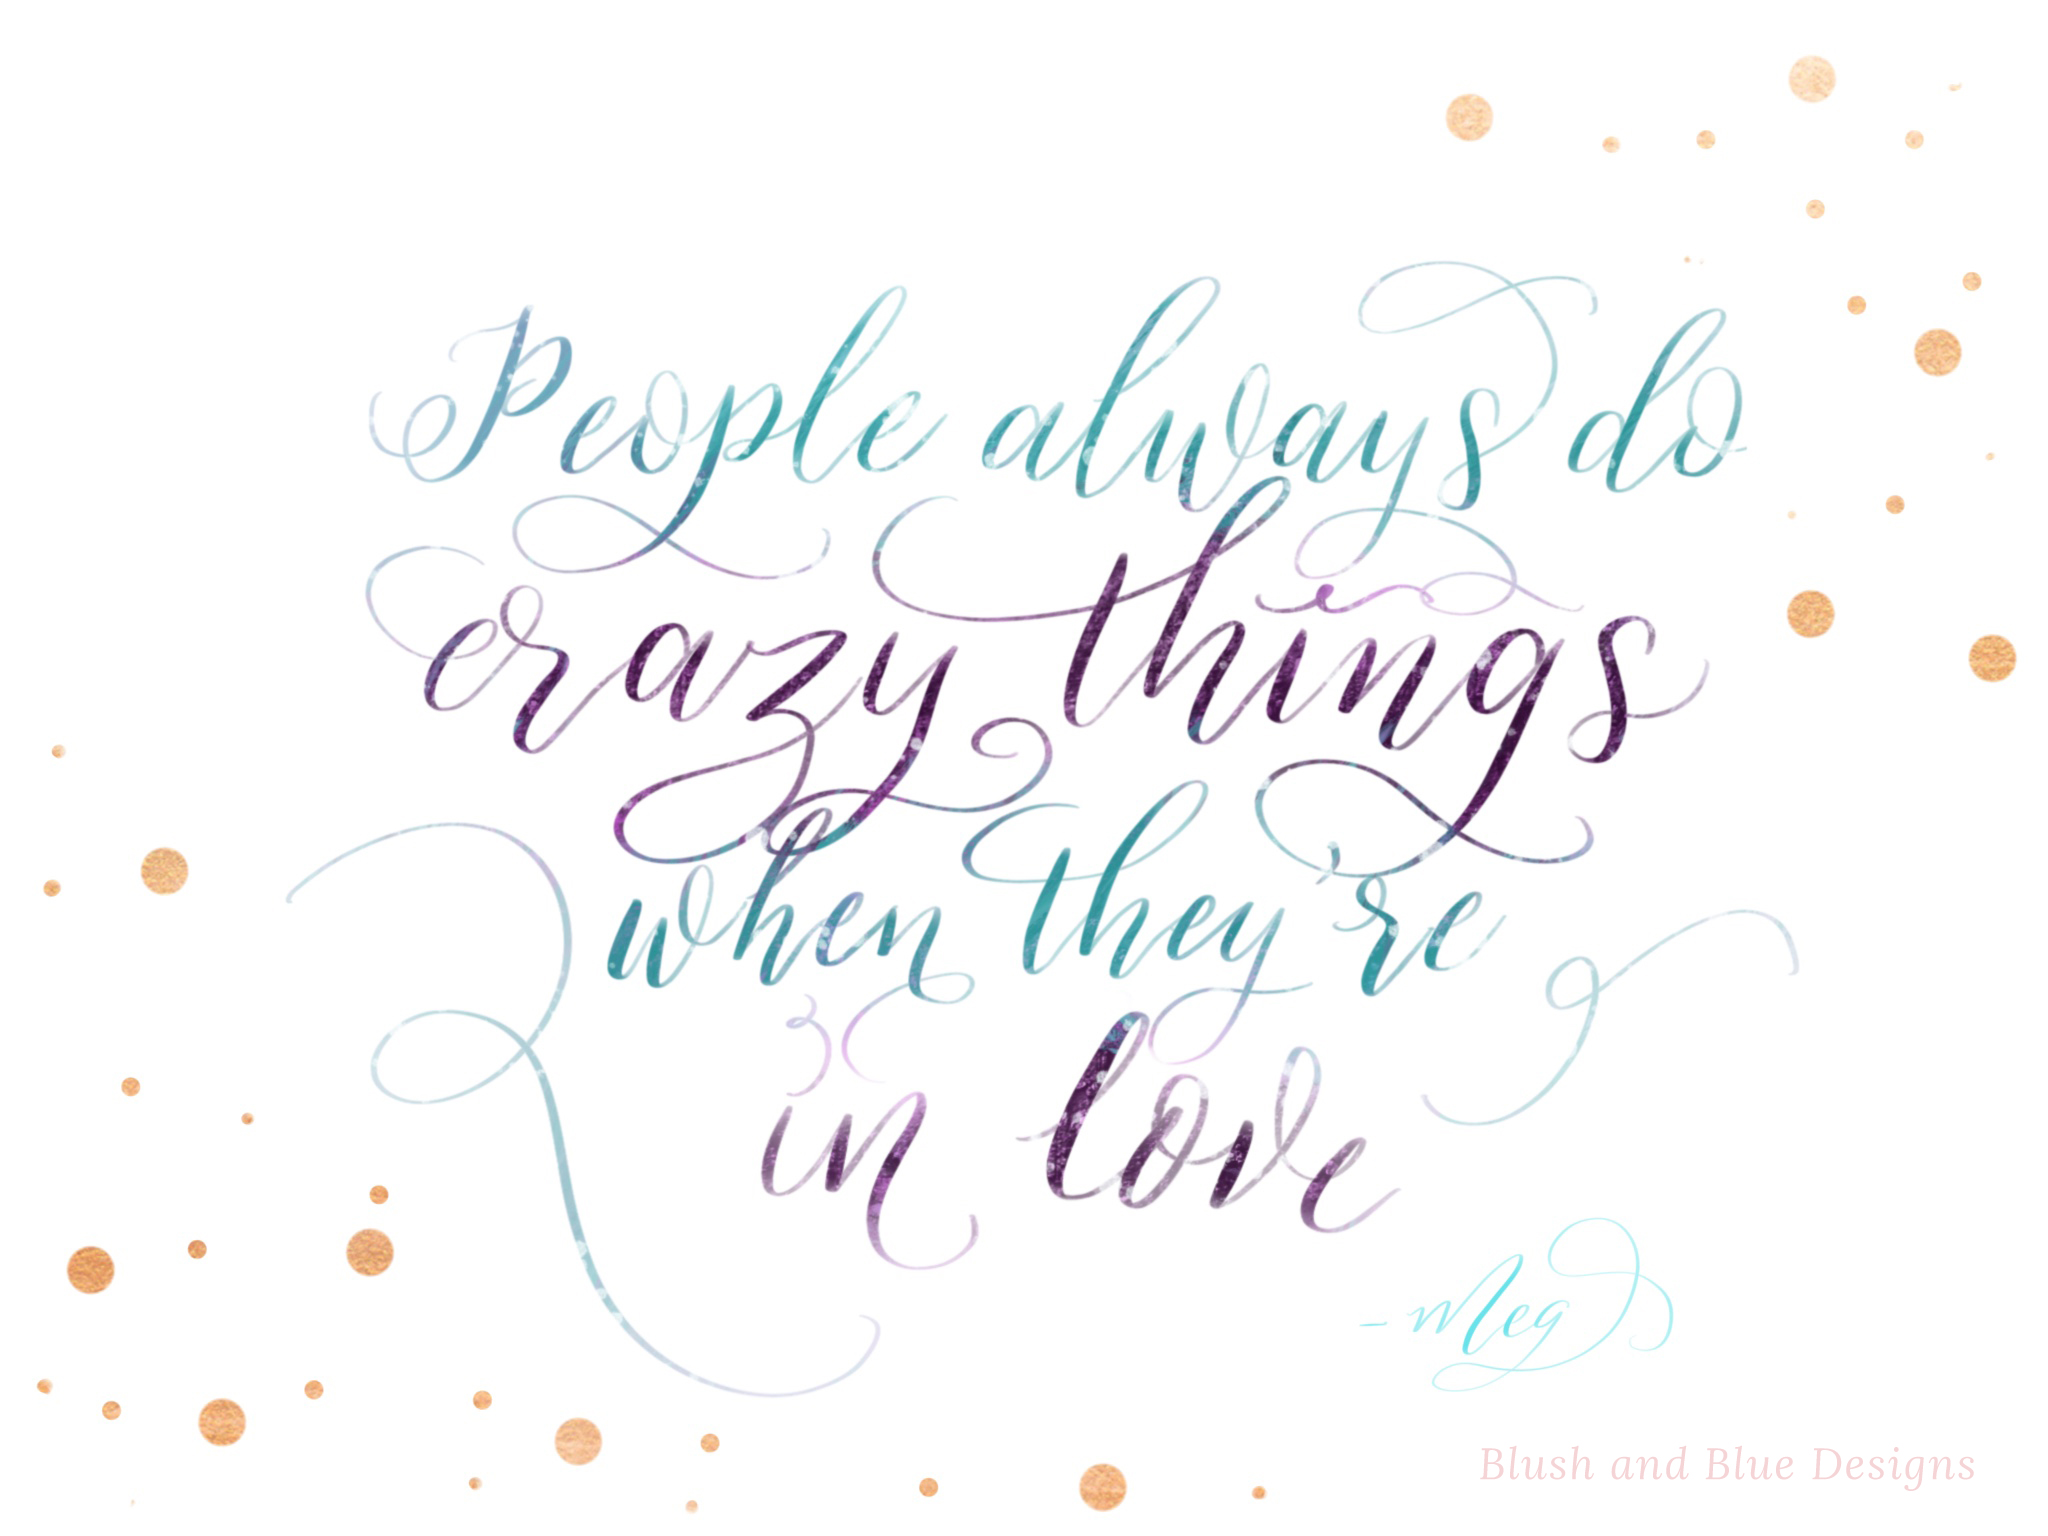 Meg, Hercules quote. Disney quote hand lettering, free download.